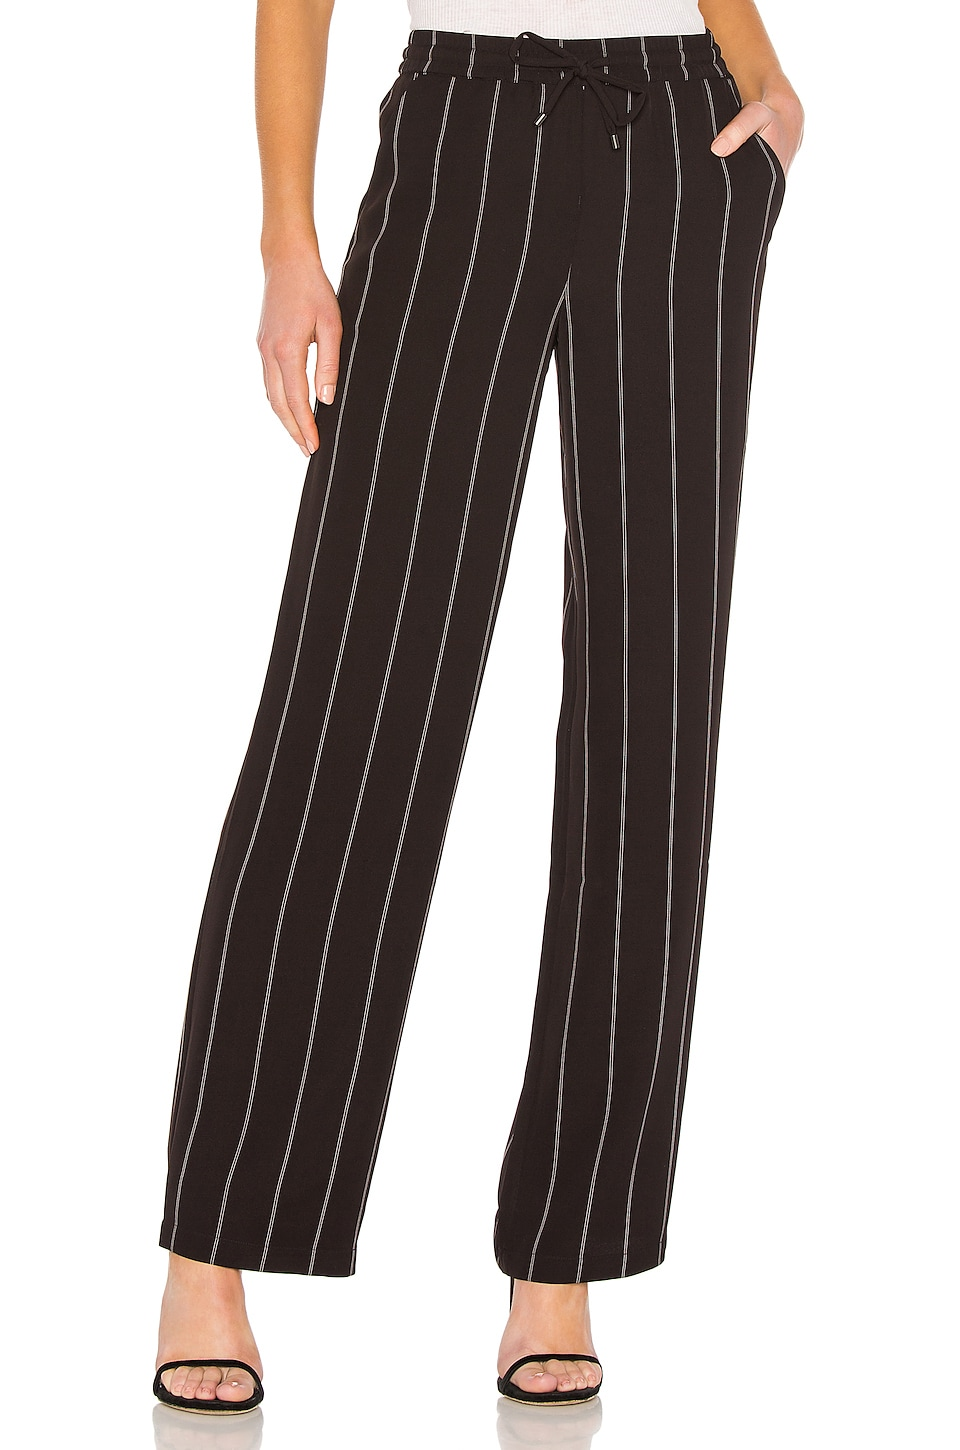 ANINE BING Isabella Pant in Black